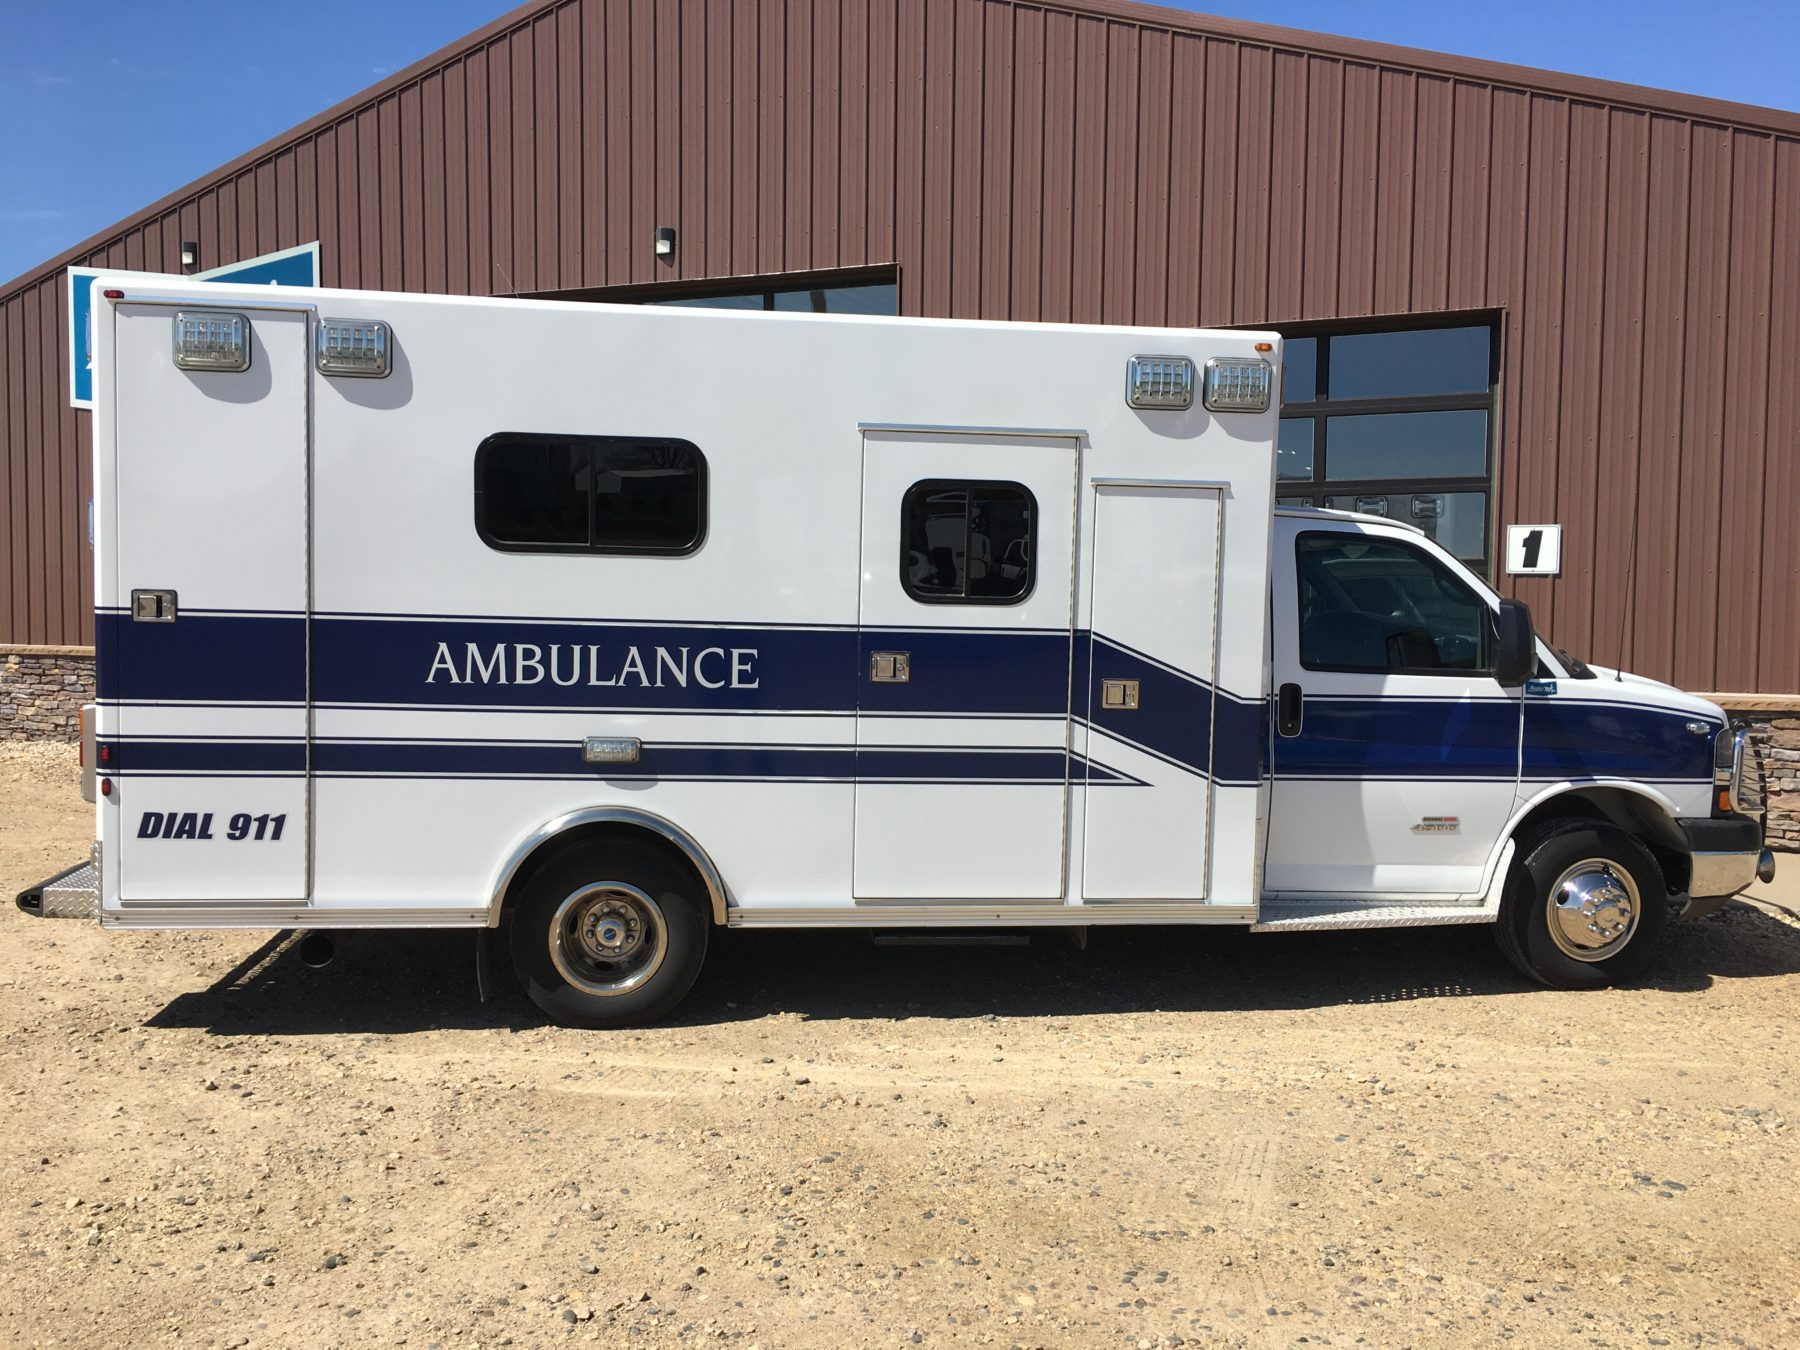 2014 Chevrolet G4500 Type 3 Ambulance For Sale – Picture 3